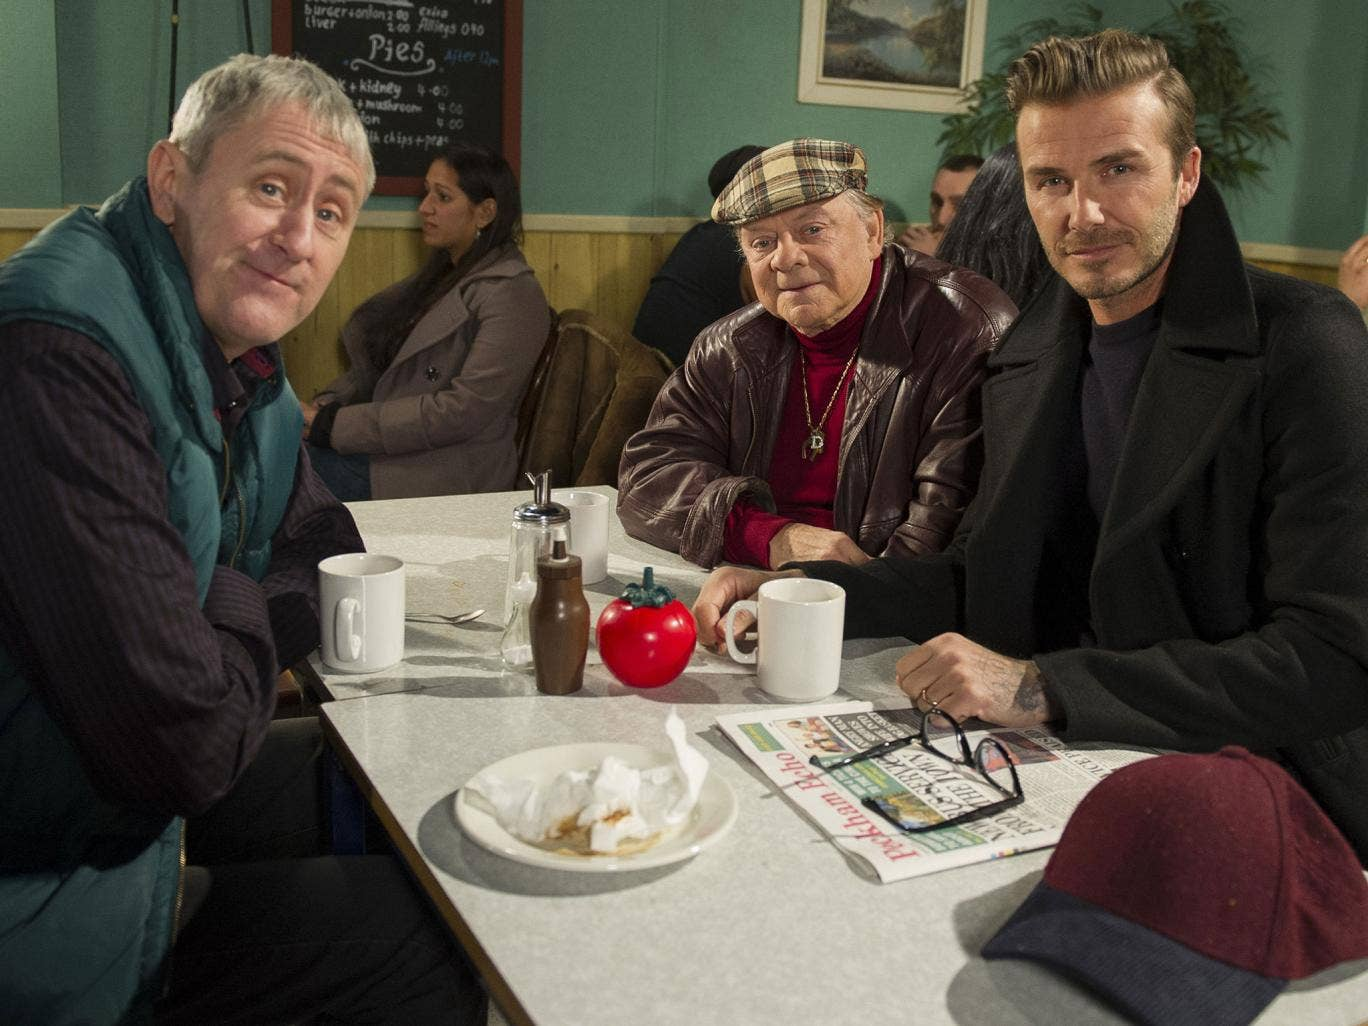 David Beckham will have a cameo role in the Only Fools and Horses reunion sketch on Sport Relief in March